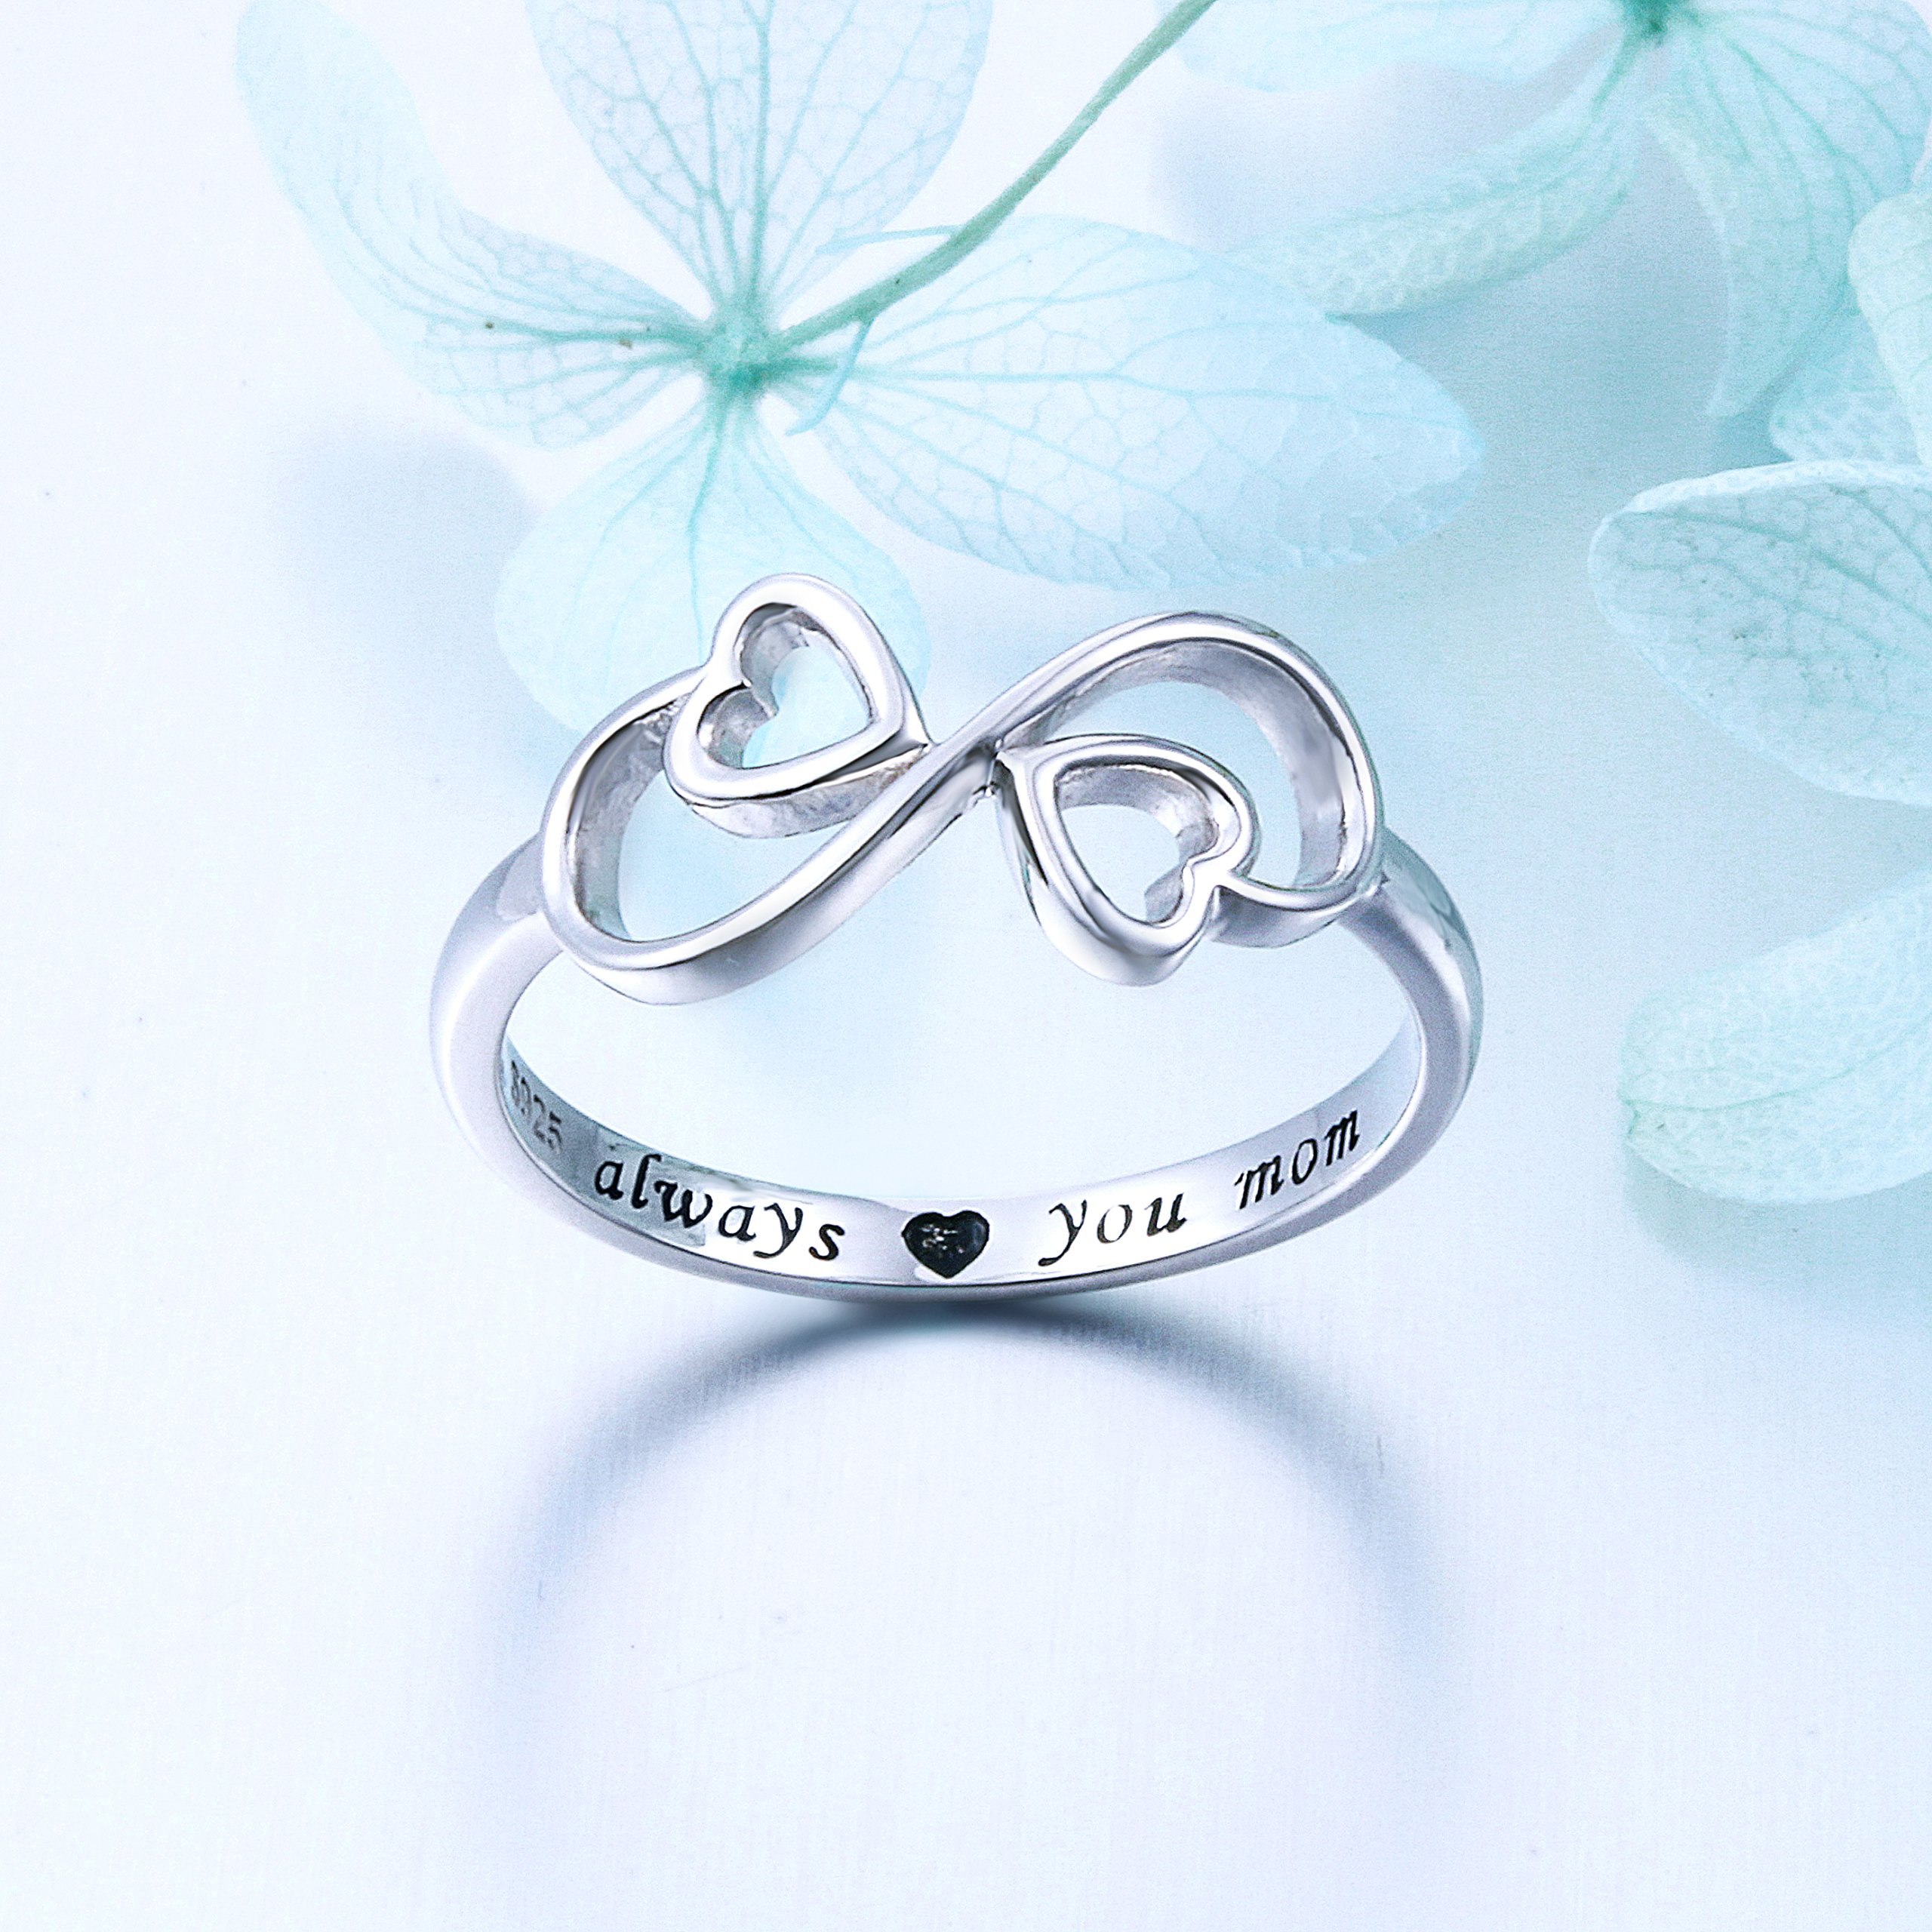 Flyow Sterling Silver Engraved Always Love You Mom Mother Daughter Forever Ring, Mother's Day Gift, Size 6-8 (7) by Flyow (Image #4)